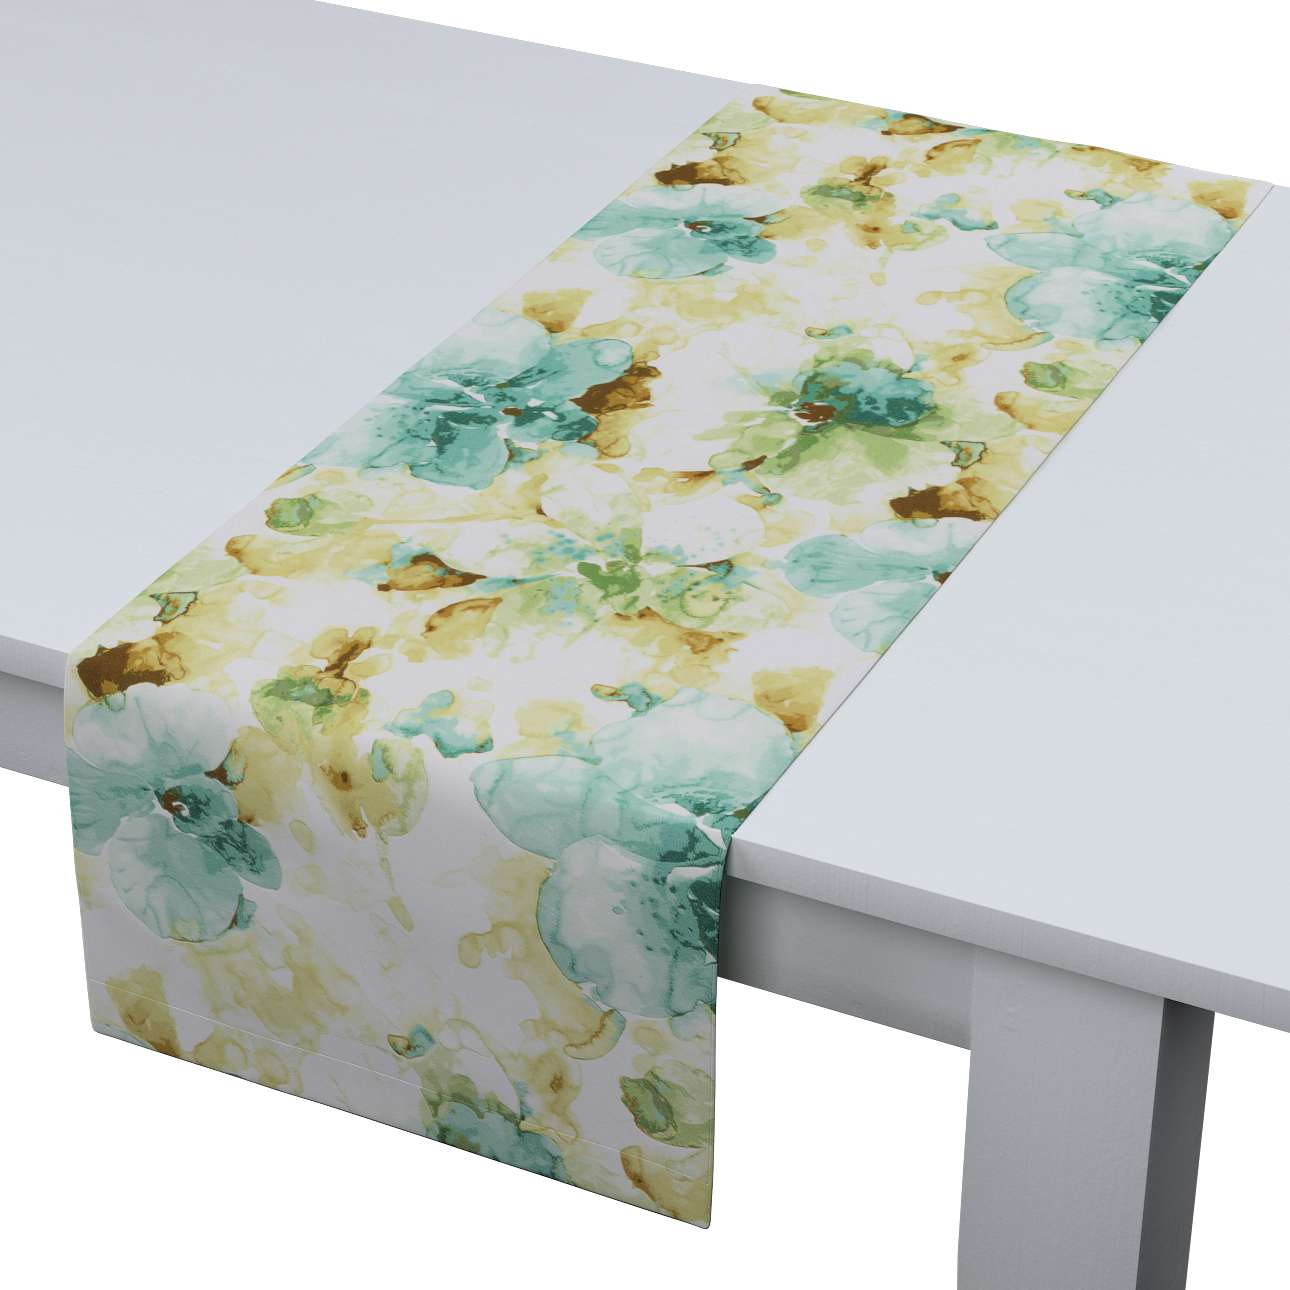 Table runner 40 x 130 cm (16 x 51 inch) in collection Acapulco, fabric: 141-35